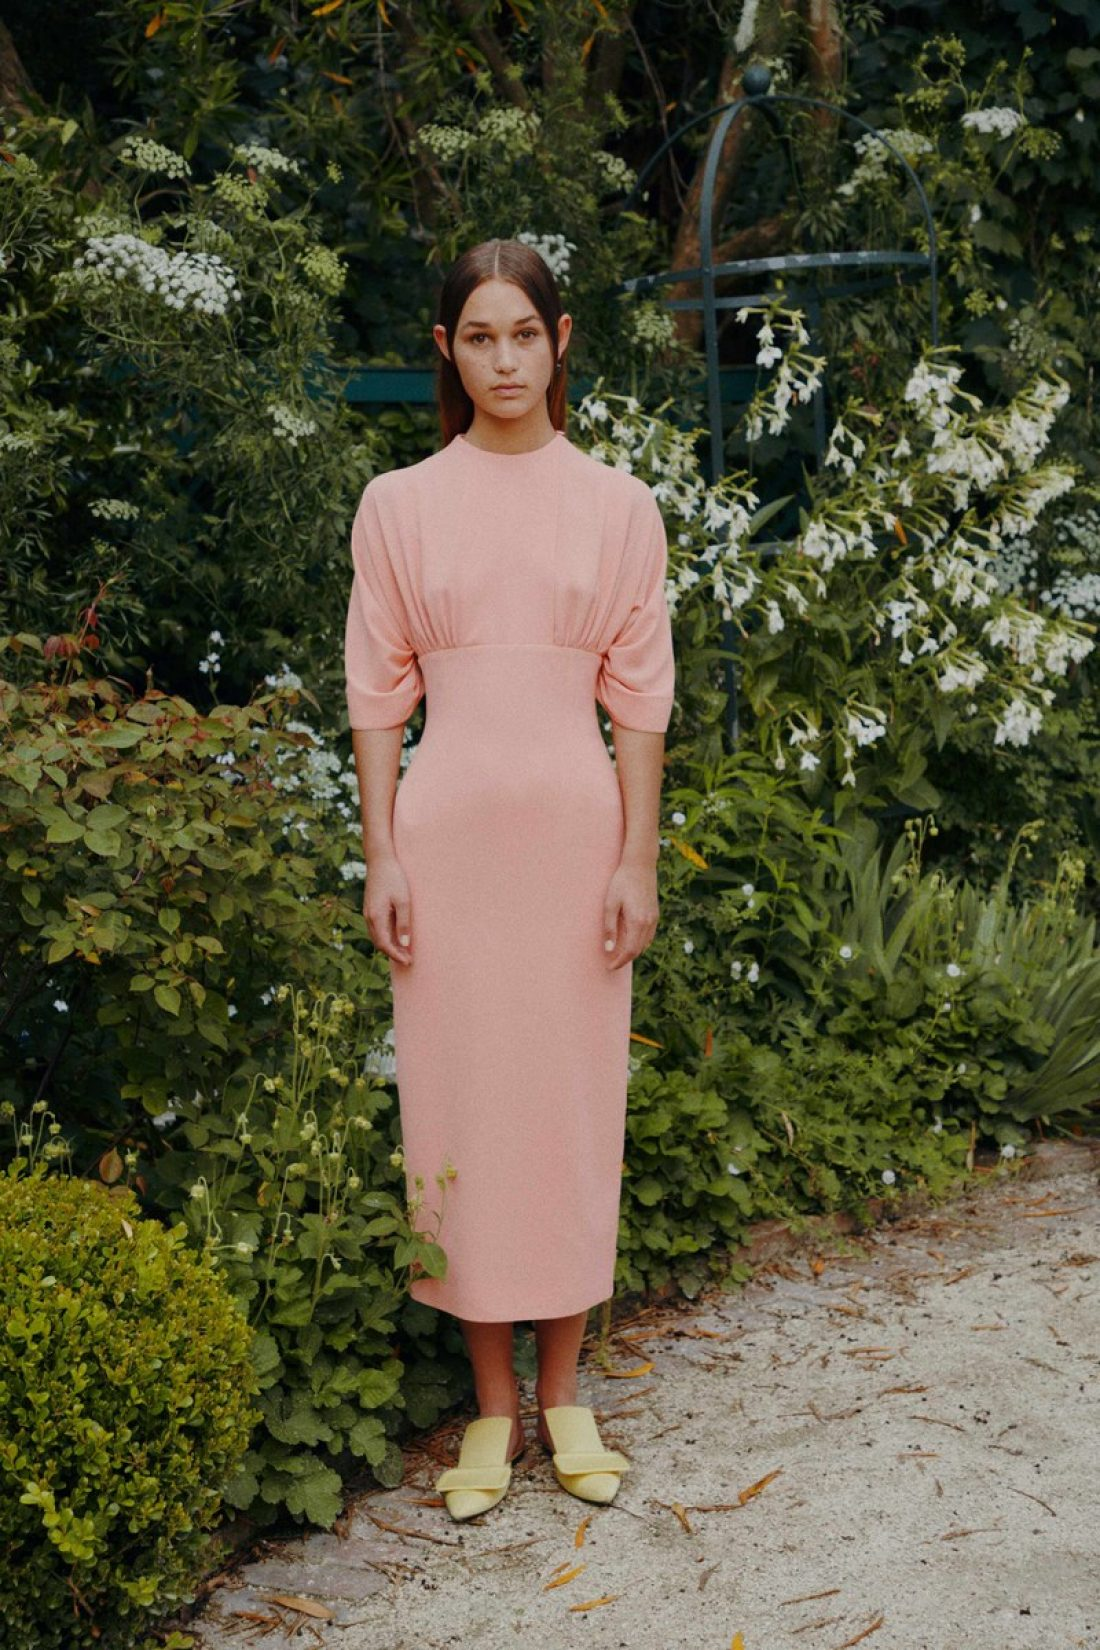 Rose photographed by James Tolic for Emilia Wickstead Resort 19